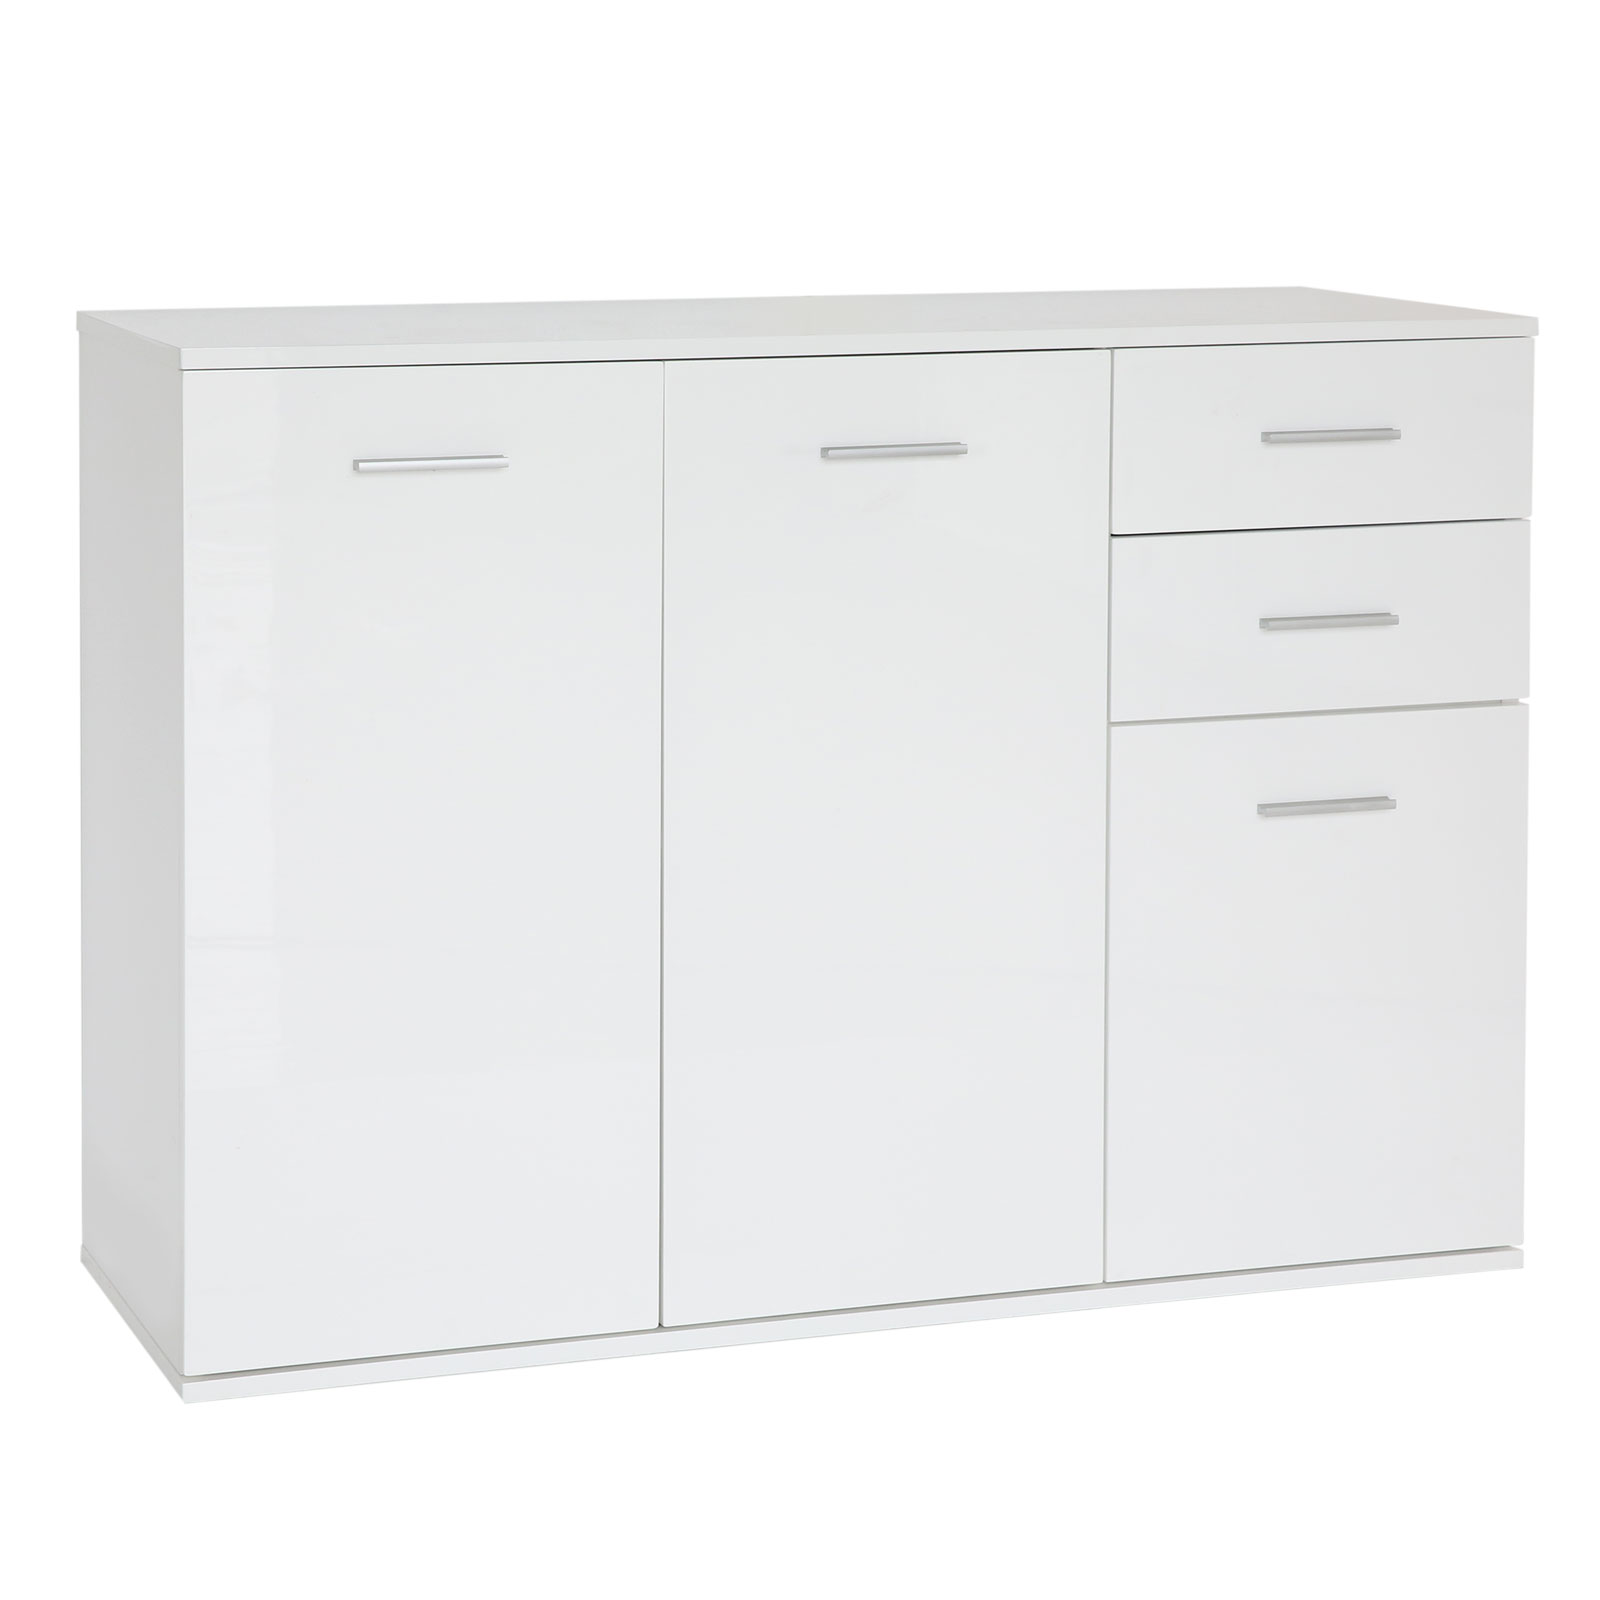 Modern Sideboard Cabinet Cupboard Wall Unit White High Gloss 3 Doors 2 Drawers